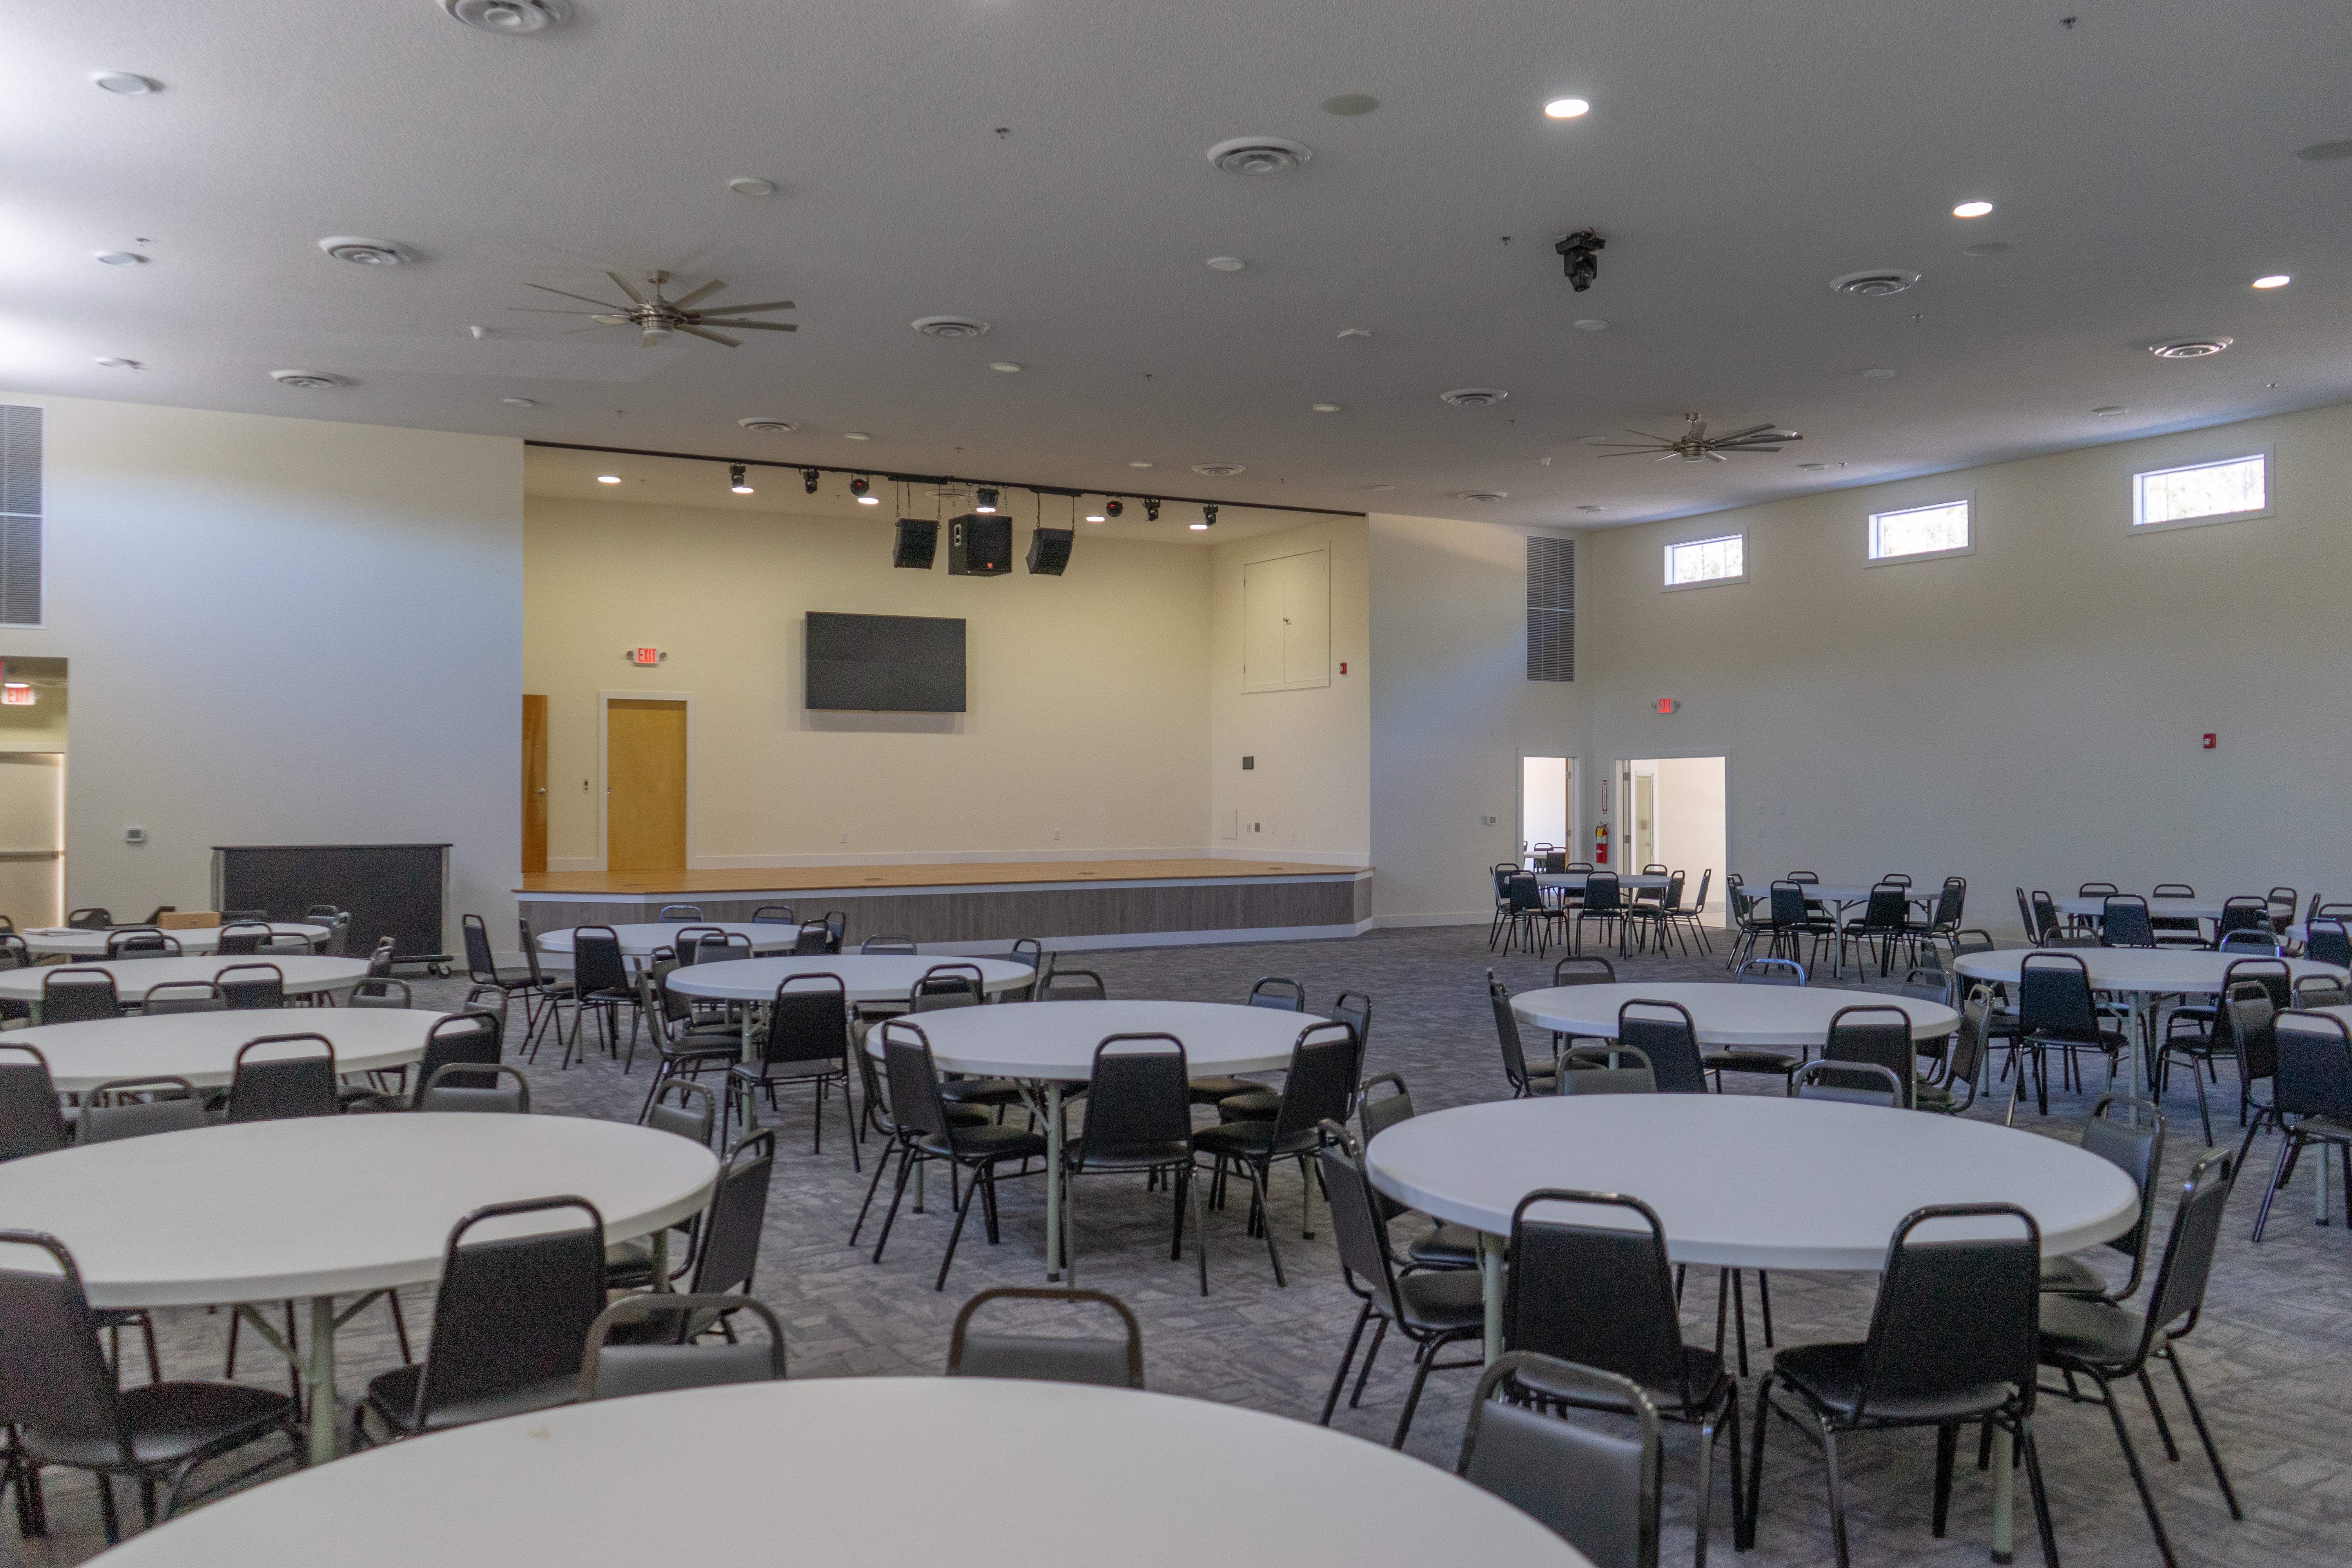 Plenty of room for seating in our main ballroom!